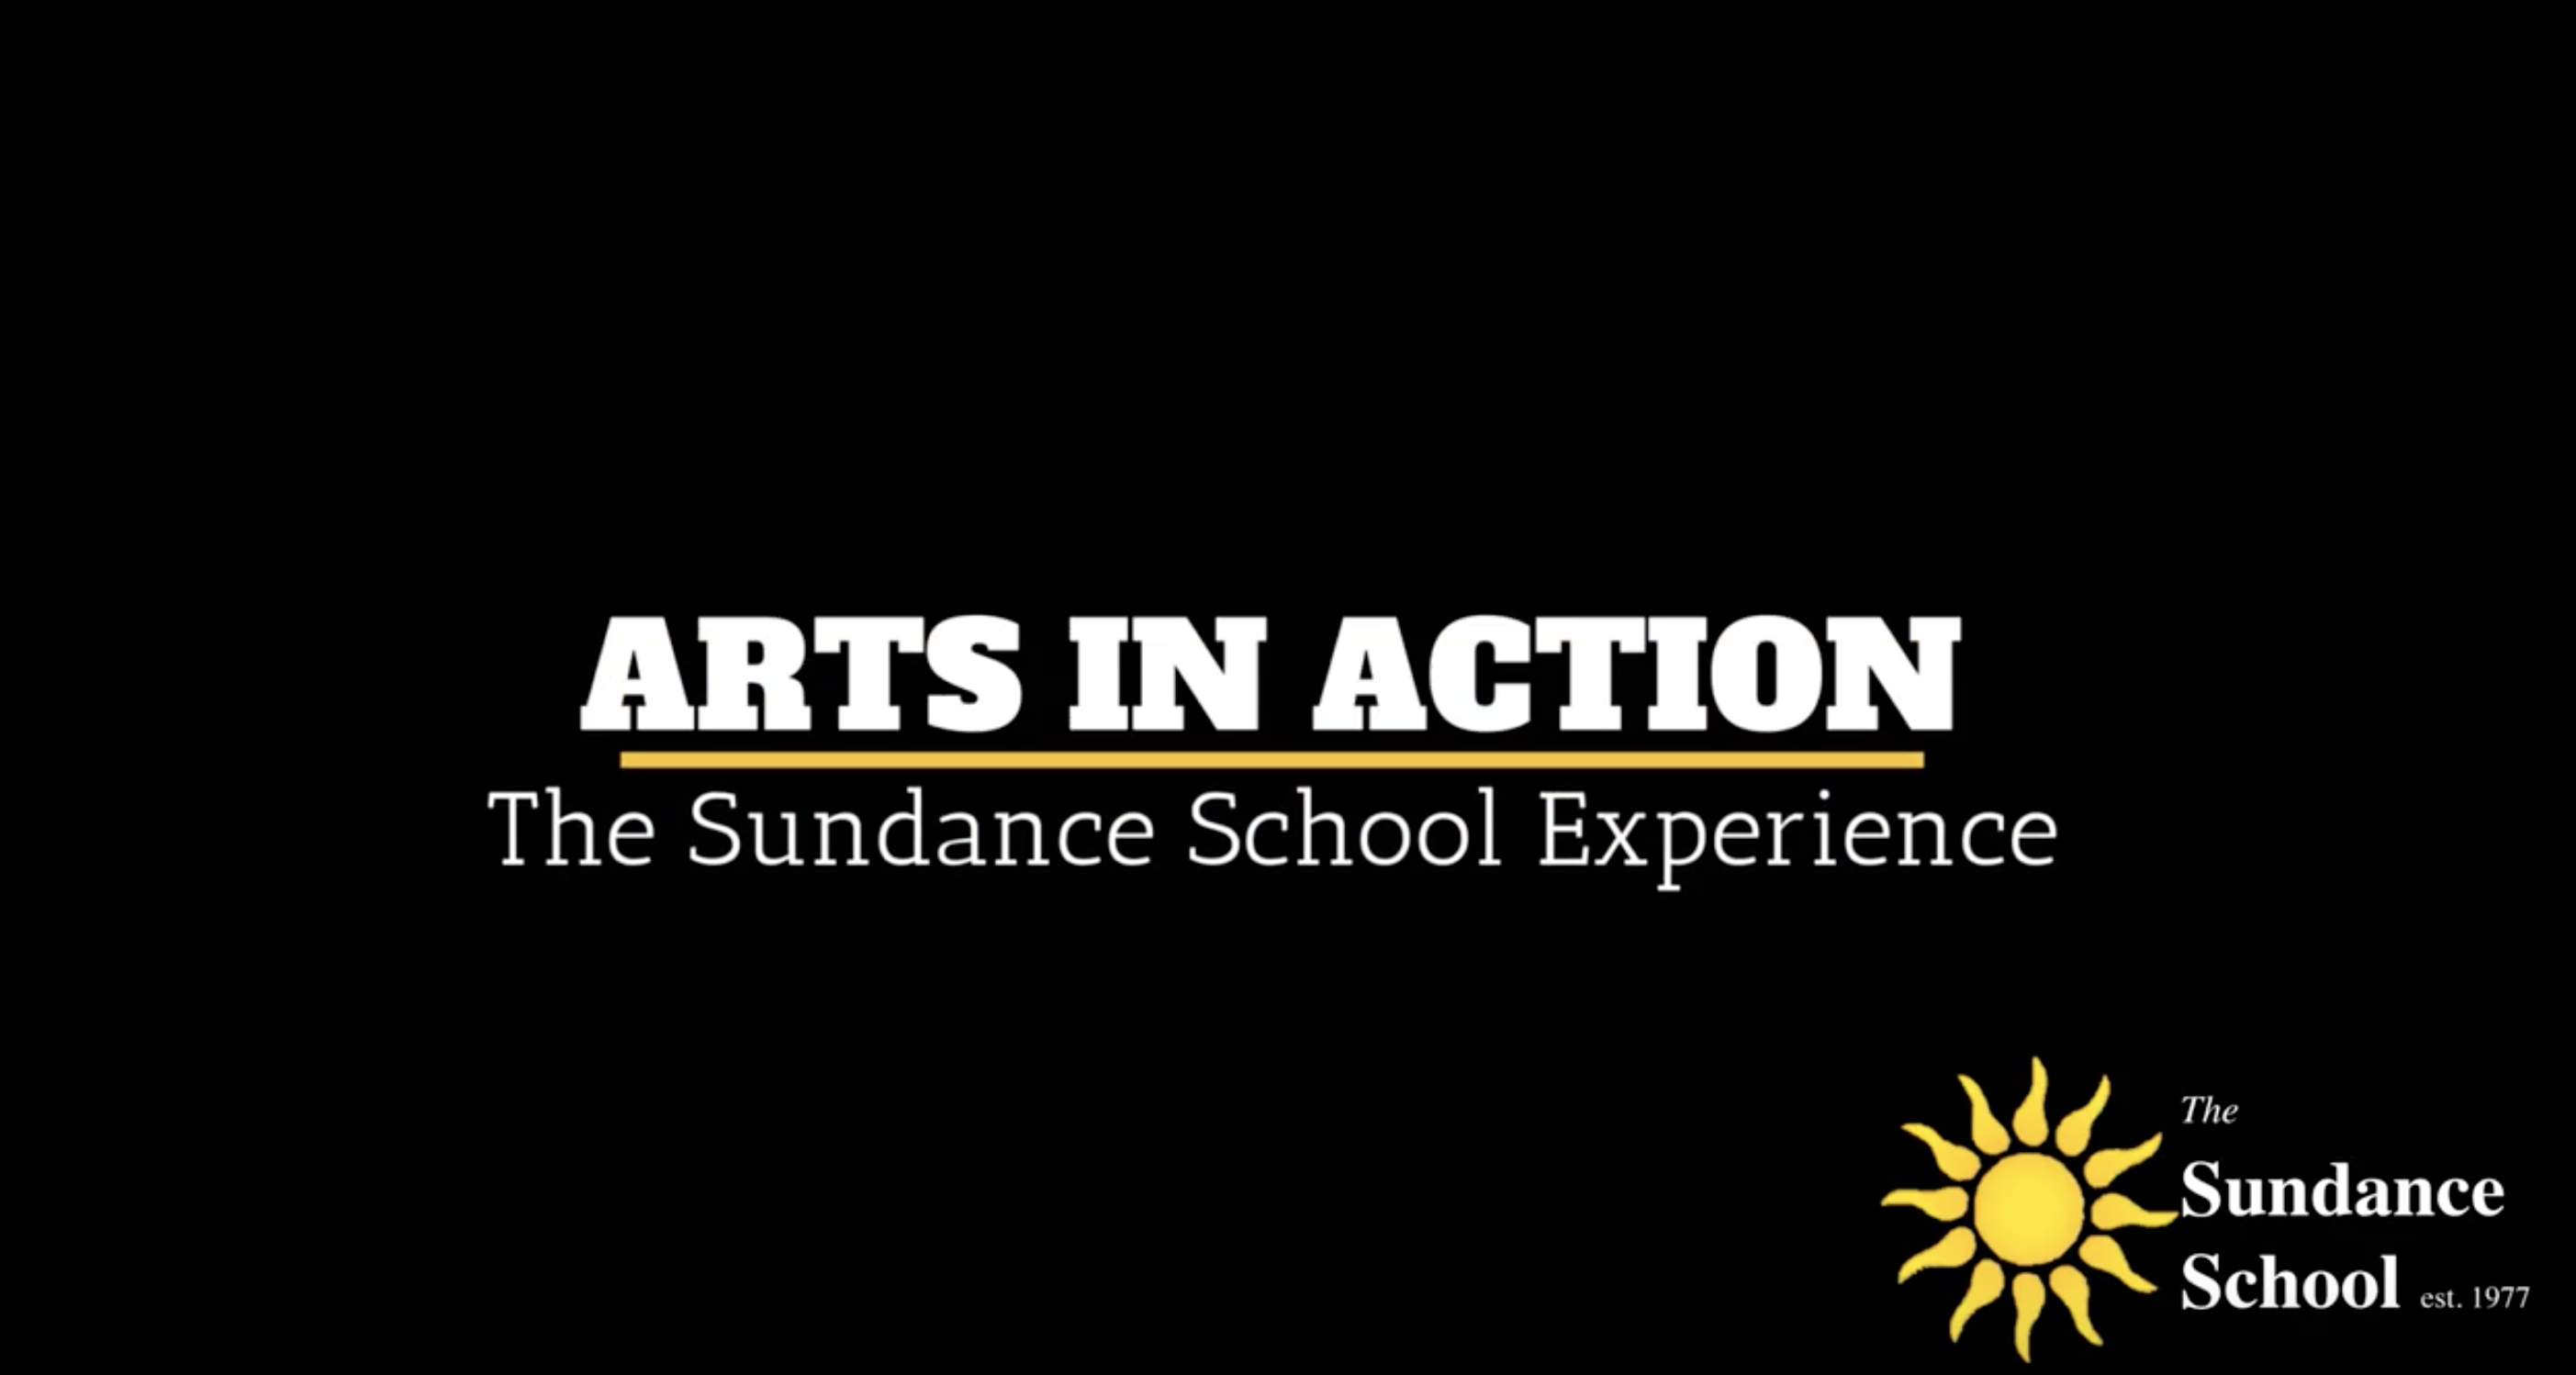 The Sundance School Experience - ARTS in Action VLOG